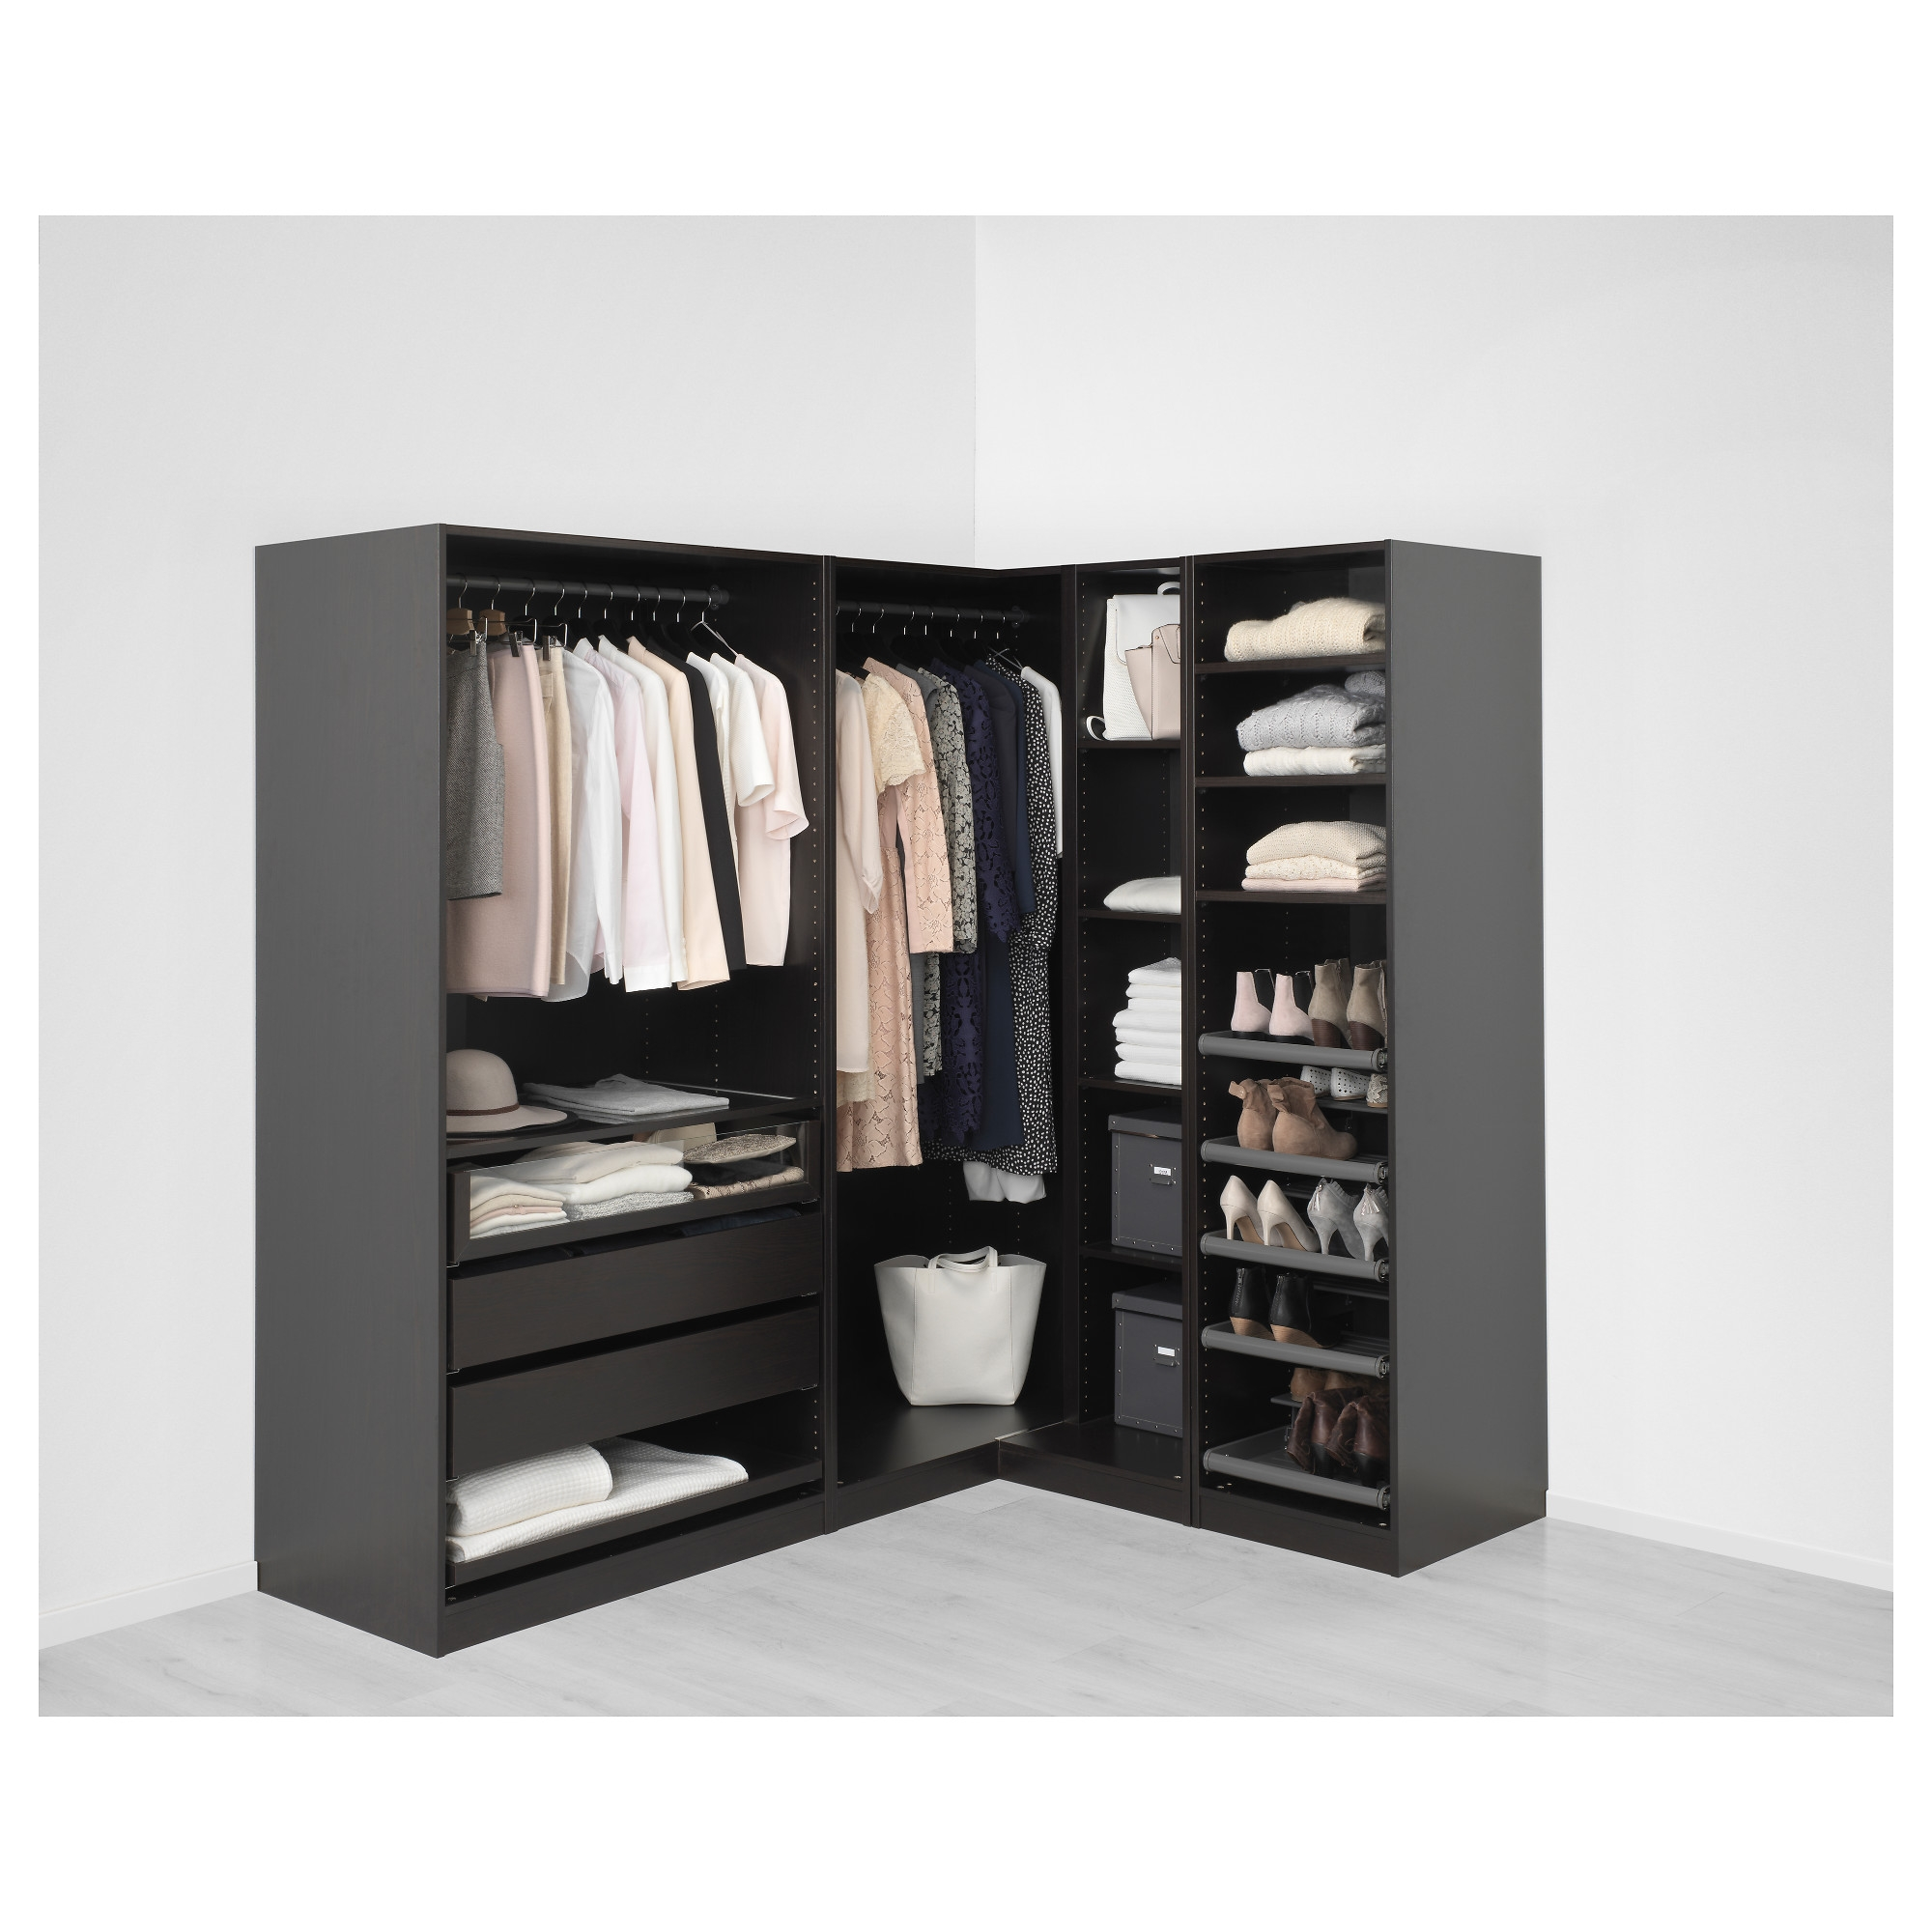 Pax Corner Wardrobe Black Brown Undredalundredal Glass 210 In Corner Wardrobe Closet IKEA (Image 15 of 25)